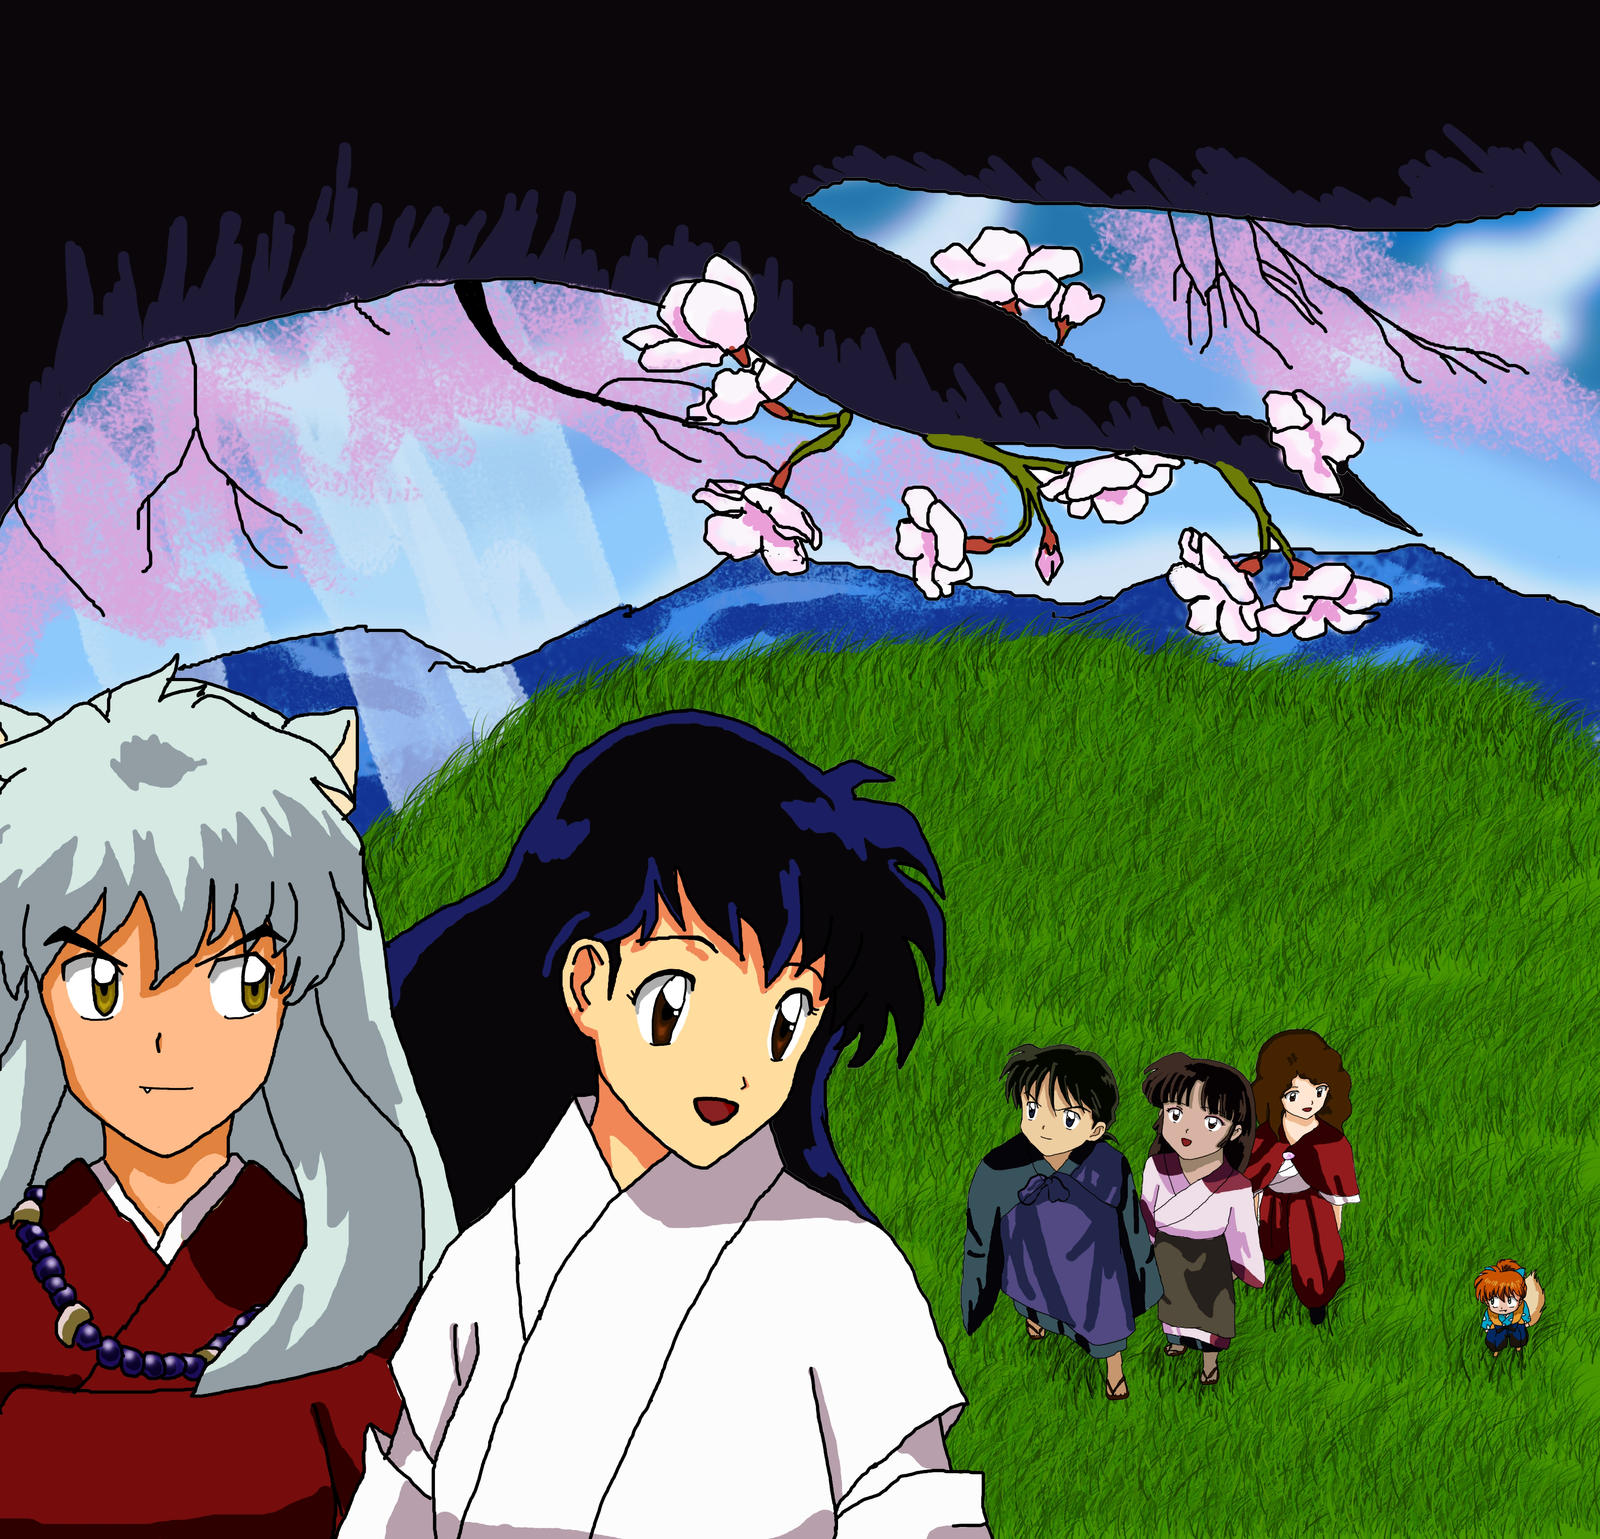 Inuyasha Movie Five! Poster 3 By Ayeletv On DeviantArt